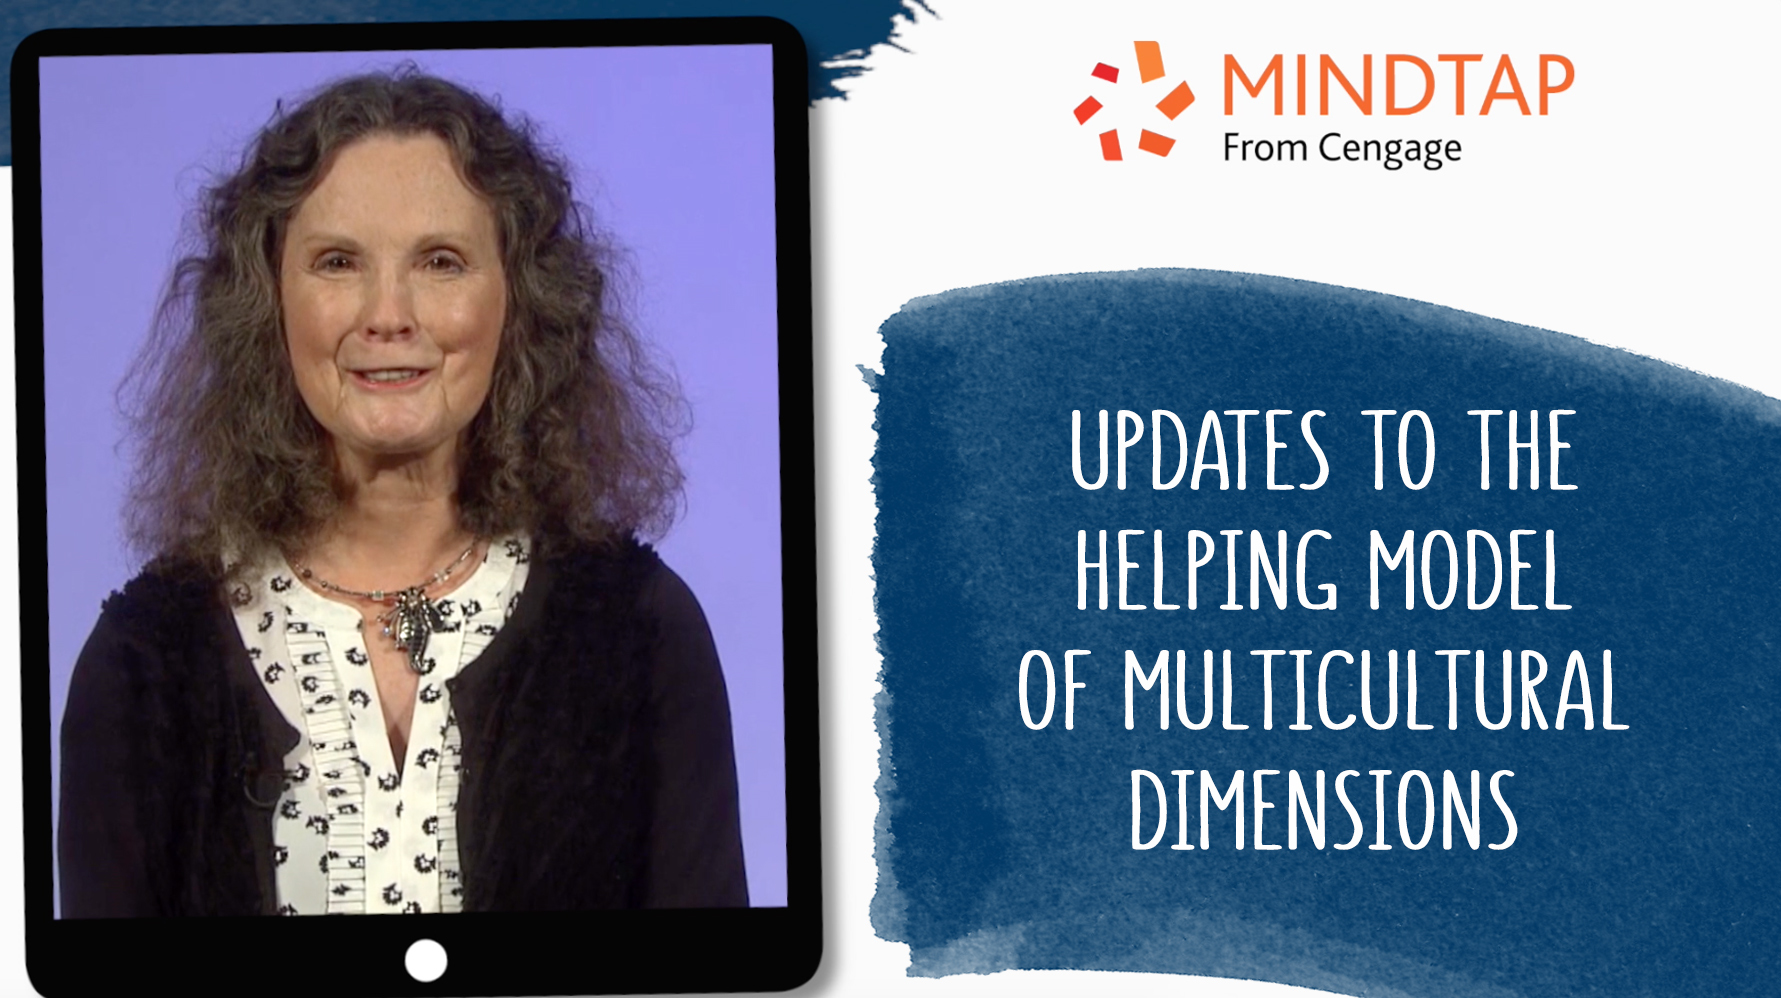 Updates to the Helping Model of Multicultural Dimensions